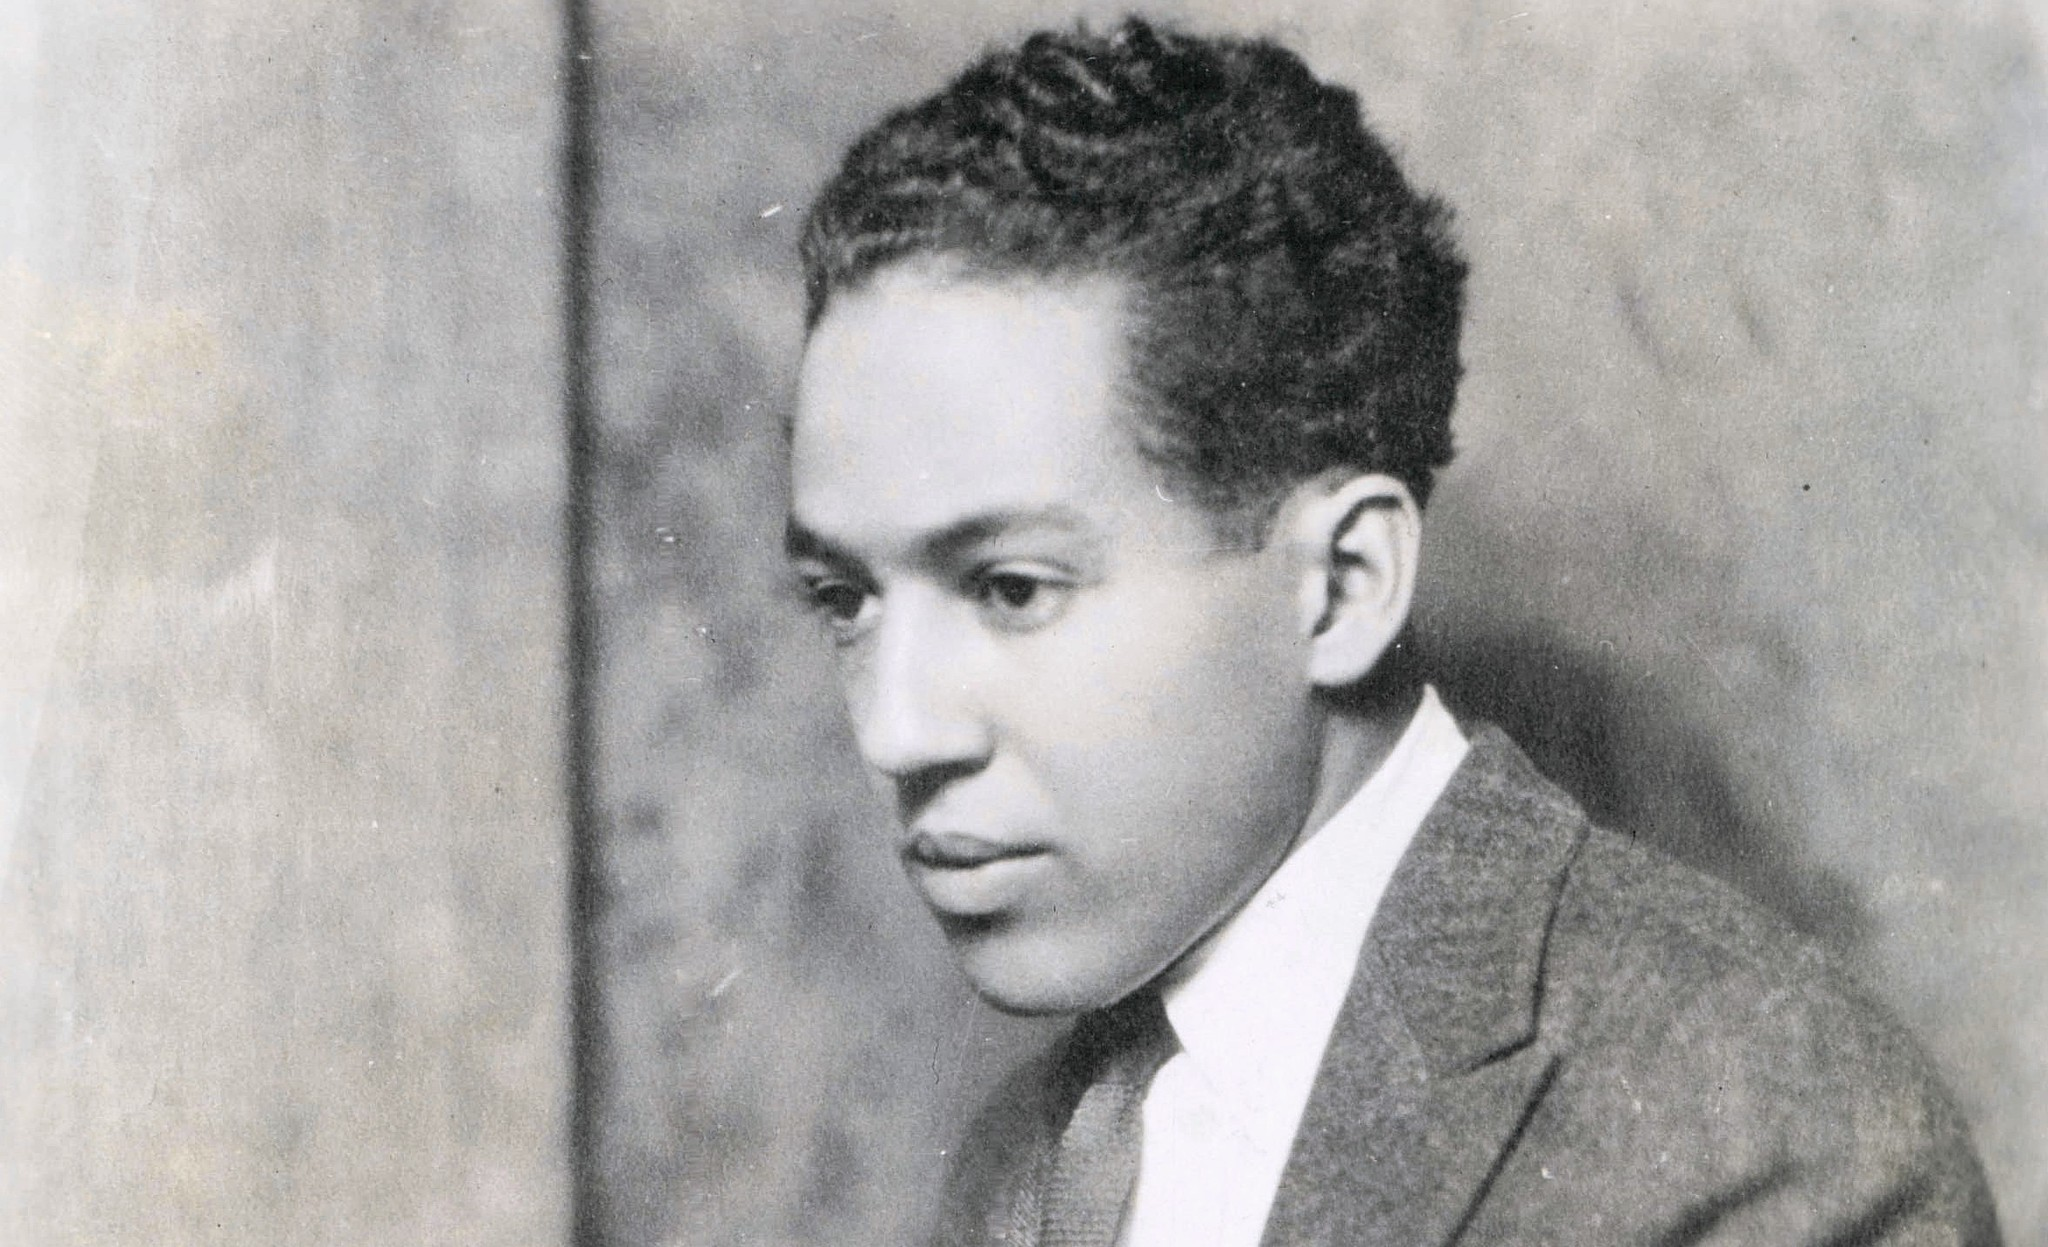 languston hughes Langston hughes: langston hughes, american writer who was an important figure in the harlem renaissance and who vividly depicted the african american experience through his writings, which ranged from poetry and plays to novels and newspaper columns learn more about hughes's life and work.